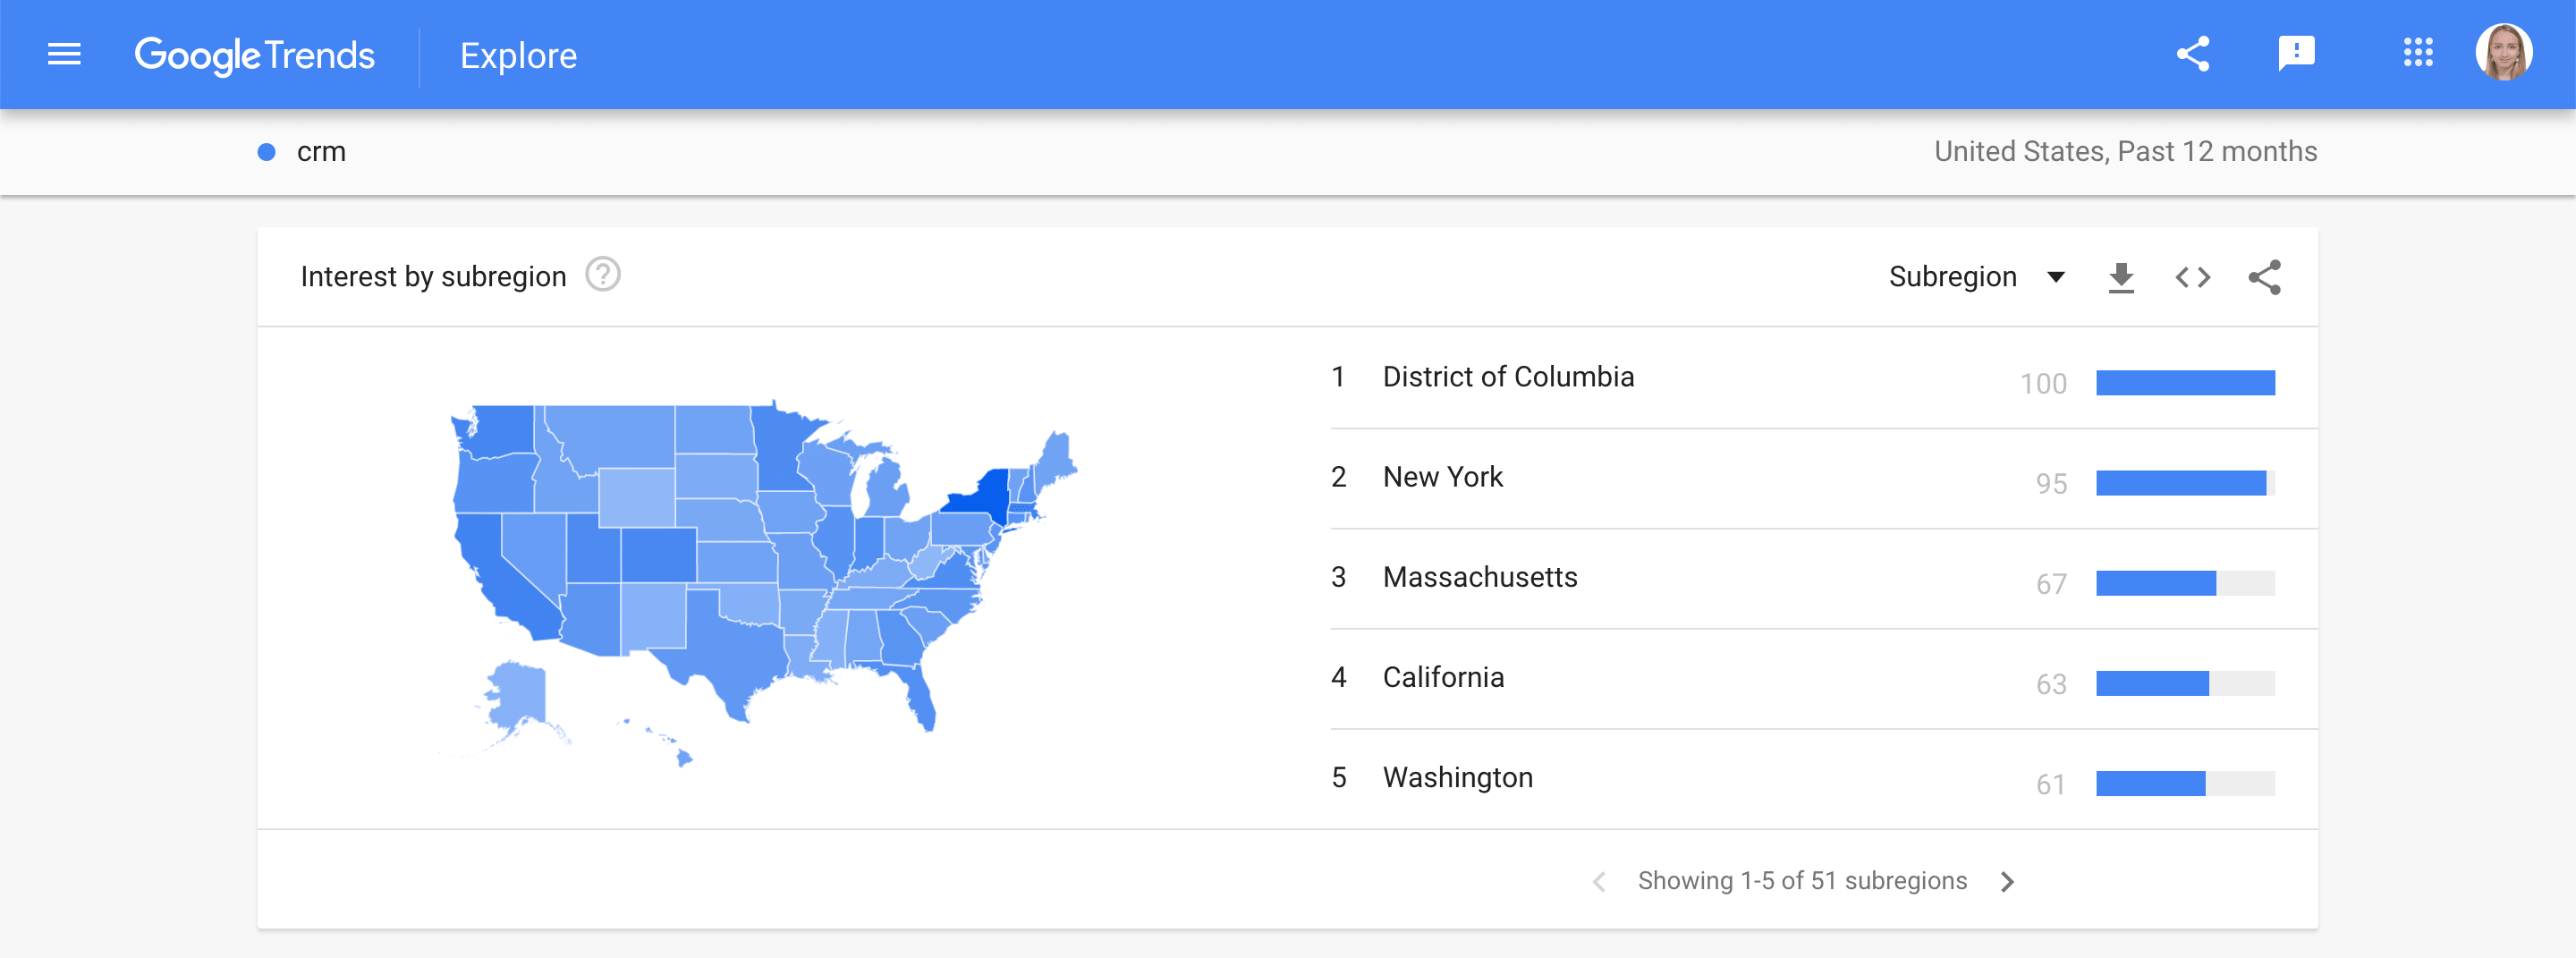 Interest by subregion section graph in Google Trends